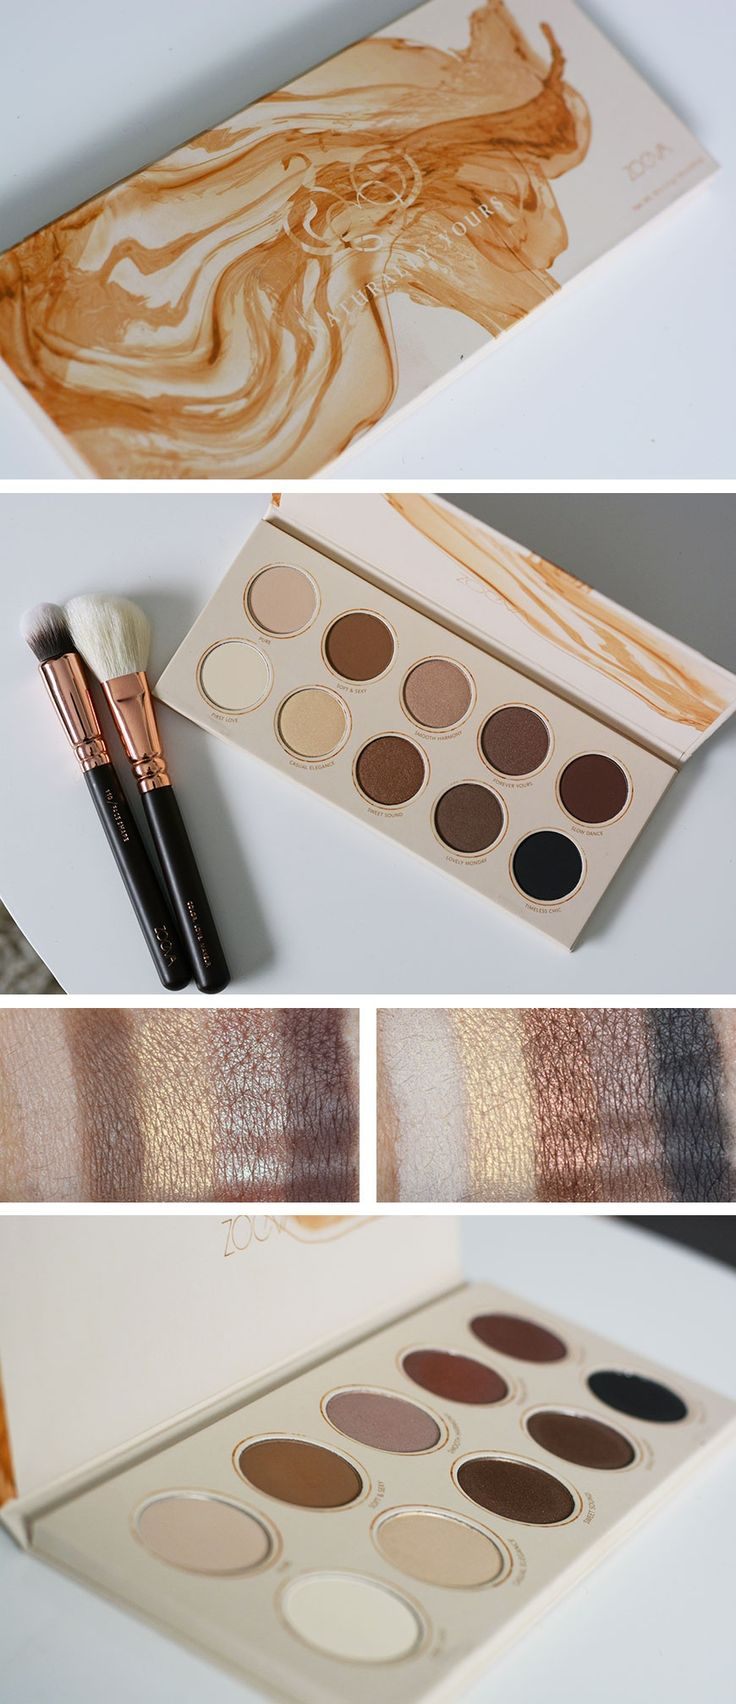 Naturally yours - beautiful browns, bronzes, shimmers...beautiful!